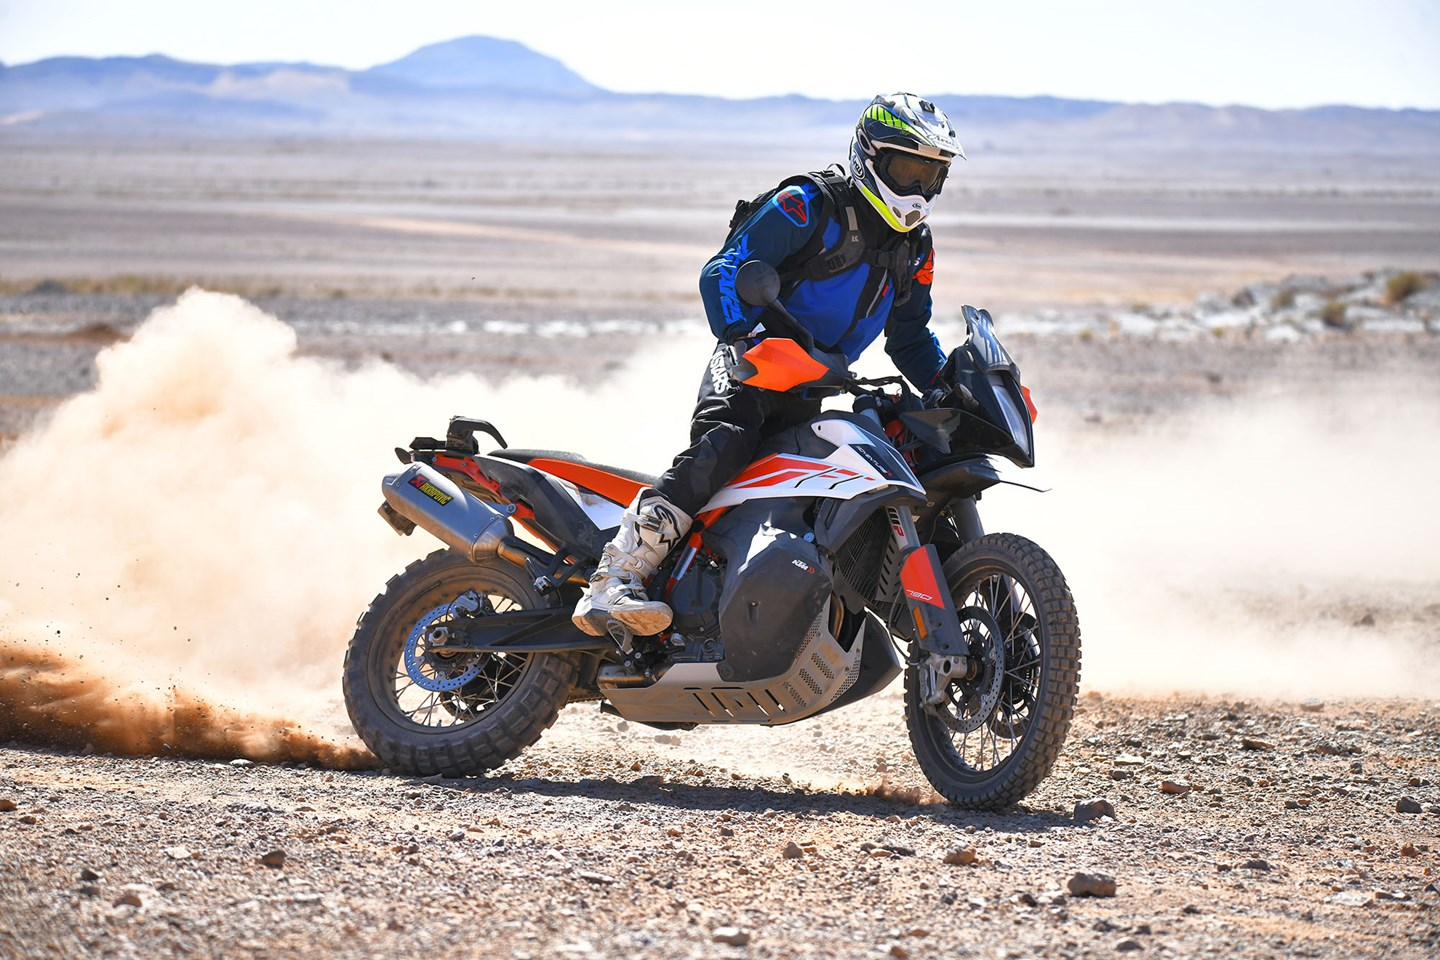 Ktm 790 Adventure R 2019 On Review Mcn